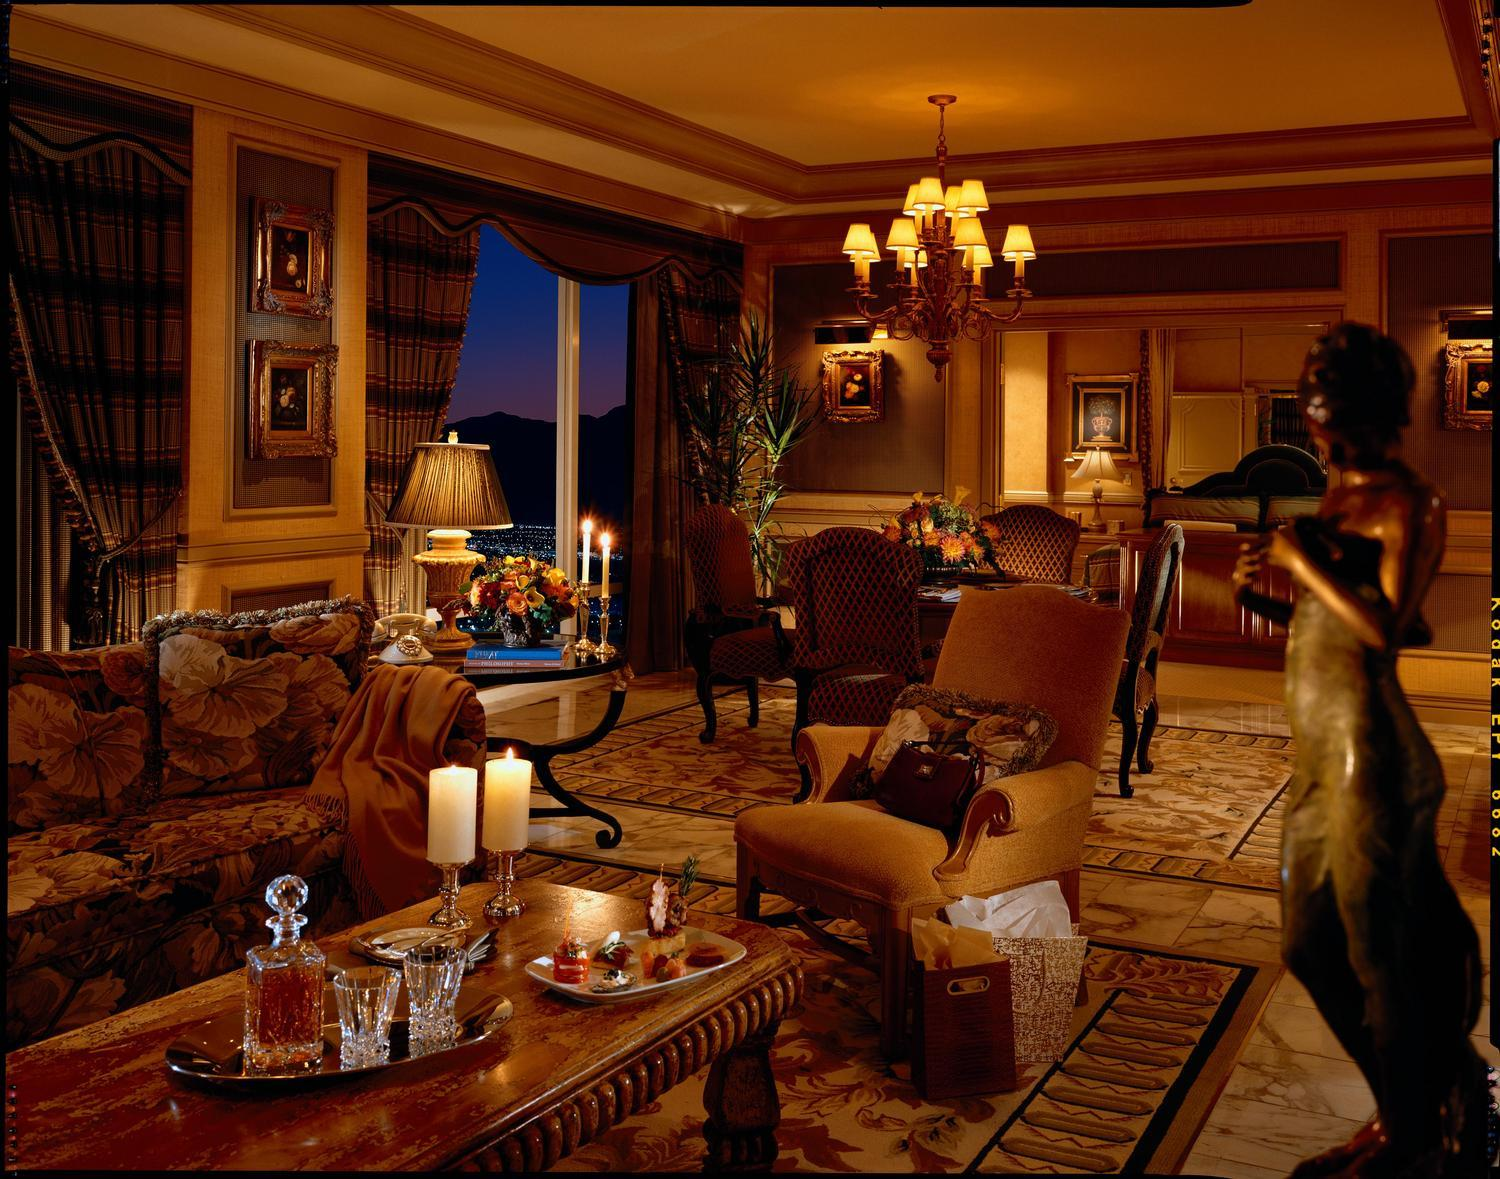 Most Expensive Hotel Room In Vegas